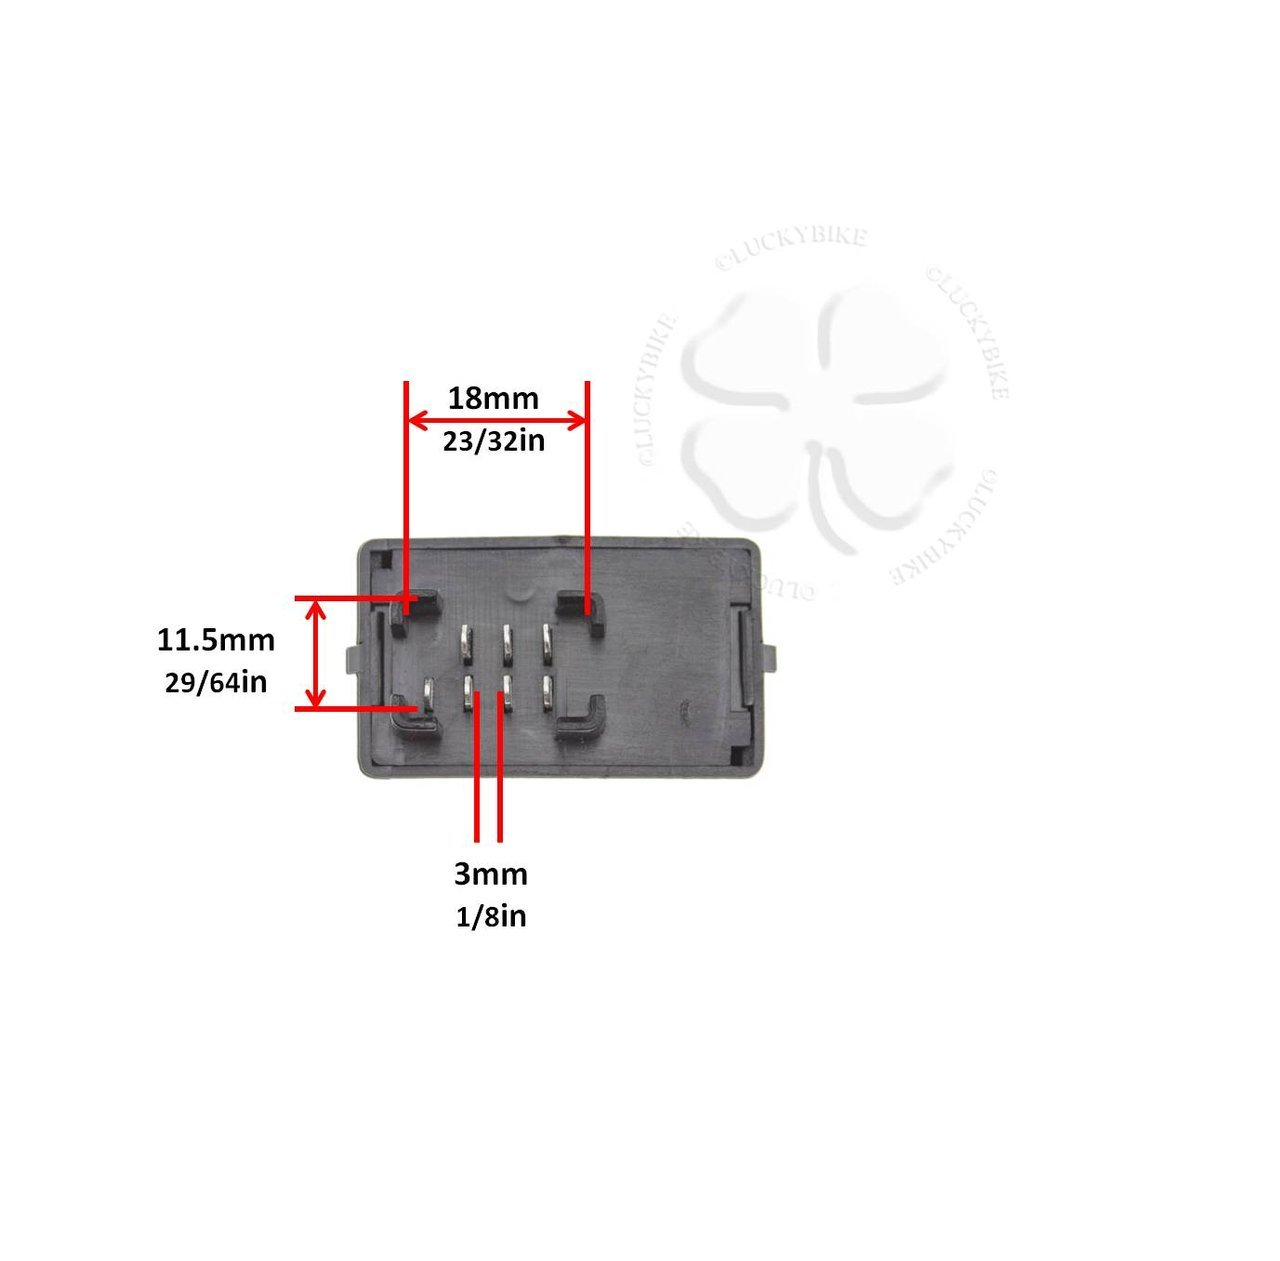 Lighting Flash Controller Suzuki Relay Turn 2006 Gsxr 1000 Taillight Wiring Diagram 2001 2002 2003 2004 2005 2007 2008 2009 2010 2011 2012 2013 2014 600 750 1300 Tlr Bandit 1200 Gsx Automotive